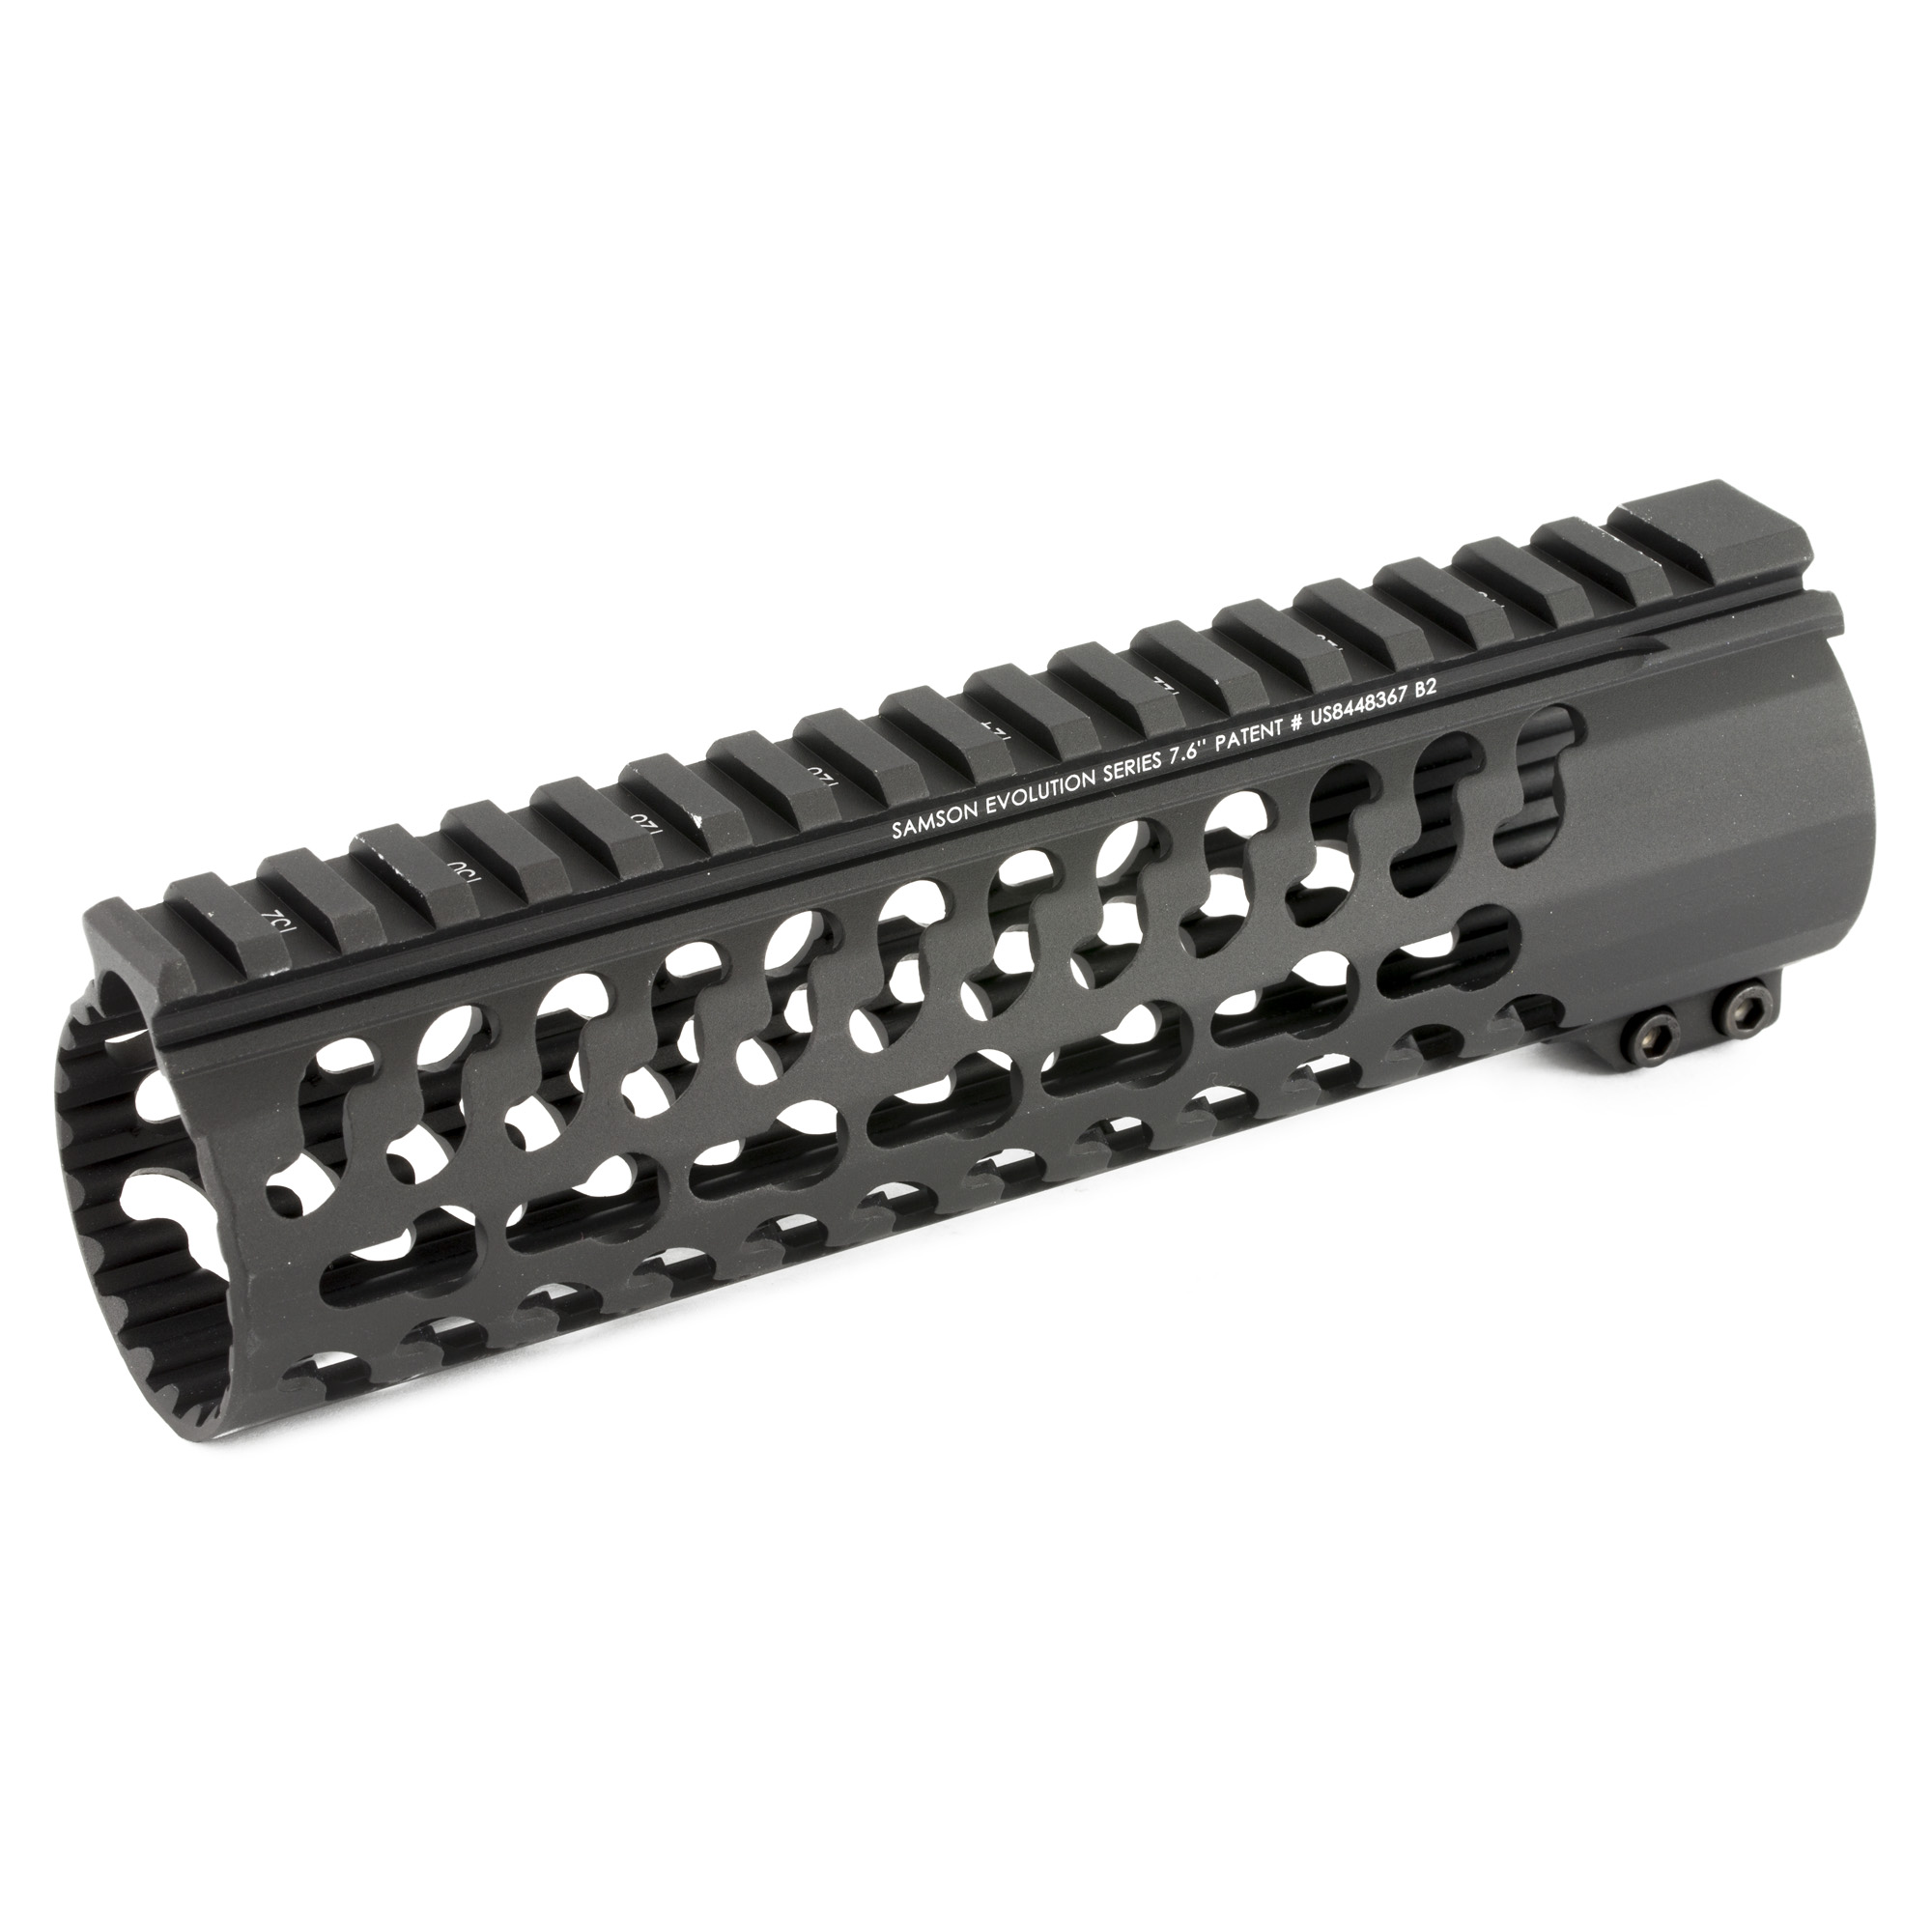 """The Samson Evolution Series features a free-floating AR-15 rail system. Being lightweight and durable allows the Samson Evolution Series to offer the perfect upgrade for 3-Gun competition shooting"""" law enforcement and military personnel or weekend enthusiasts. Accessory picatinny rails can be added or removed at any of 7 positions around the rail and any place along the length of the tube. Rail accommodates most piston systems. KeyMod versions of the Evolution Series do not include accessory rails. This is the 7.6"""" Carbine Length Keymod Evolution Rail."""